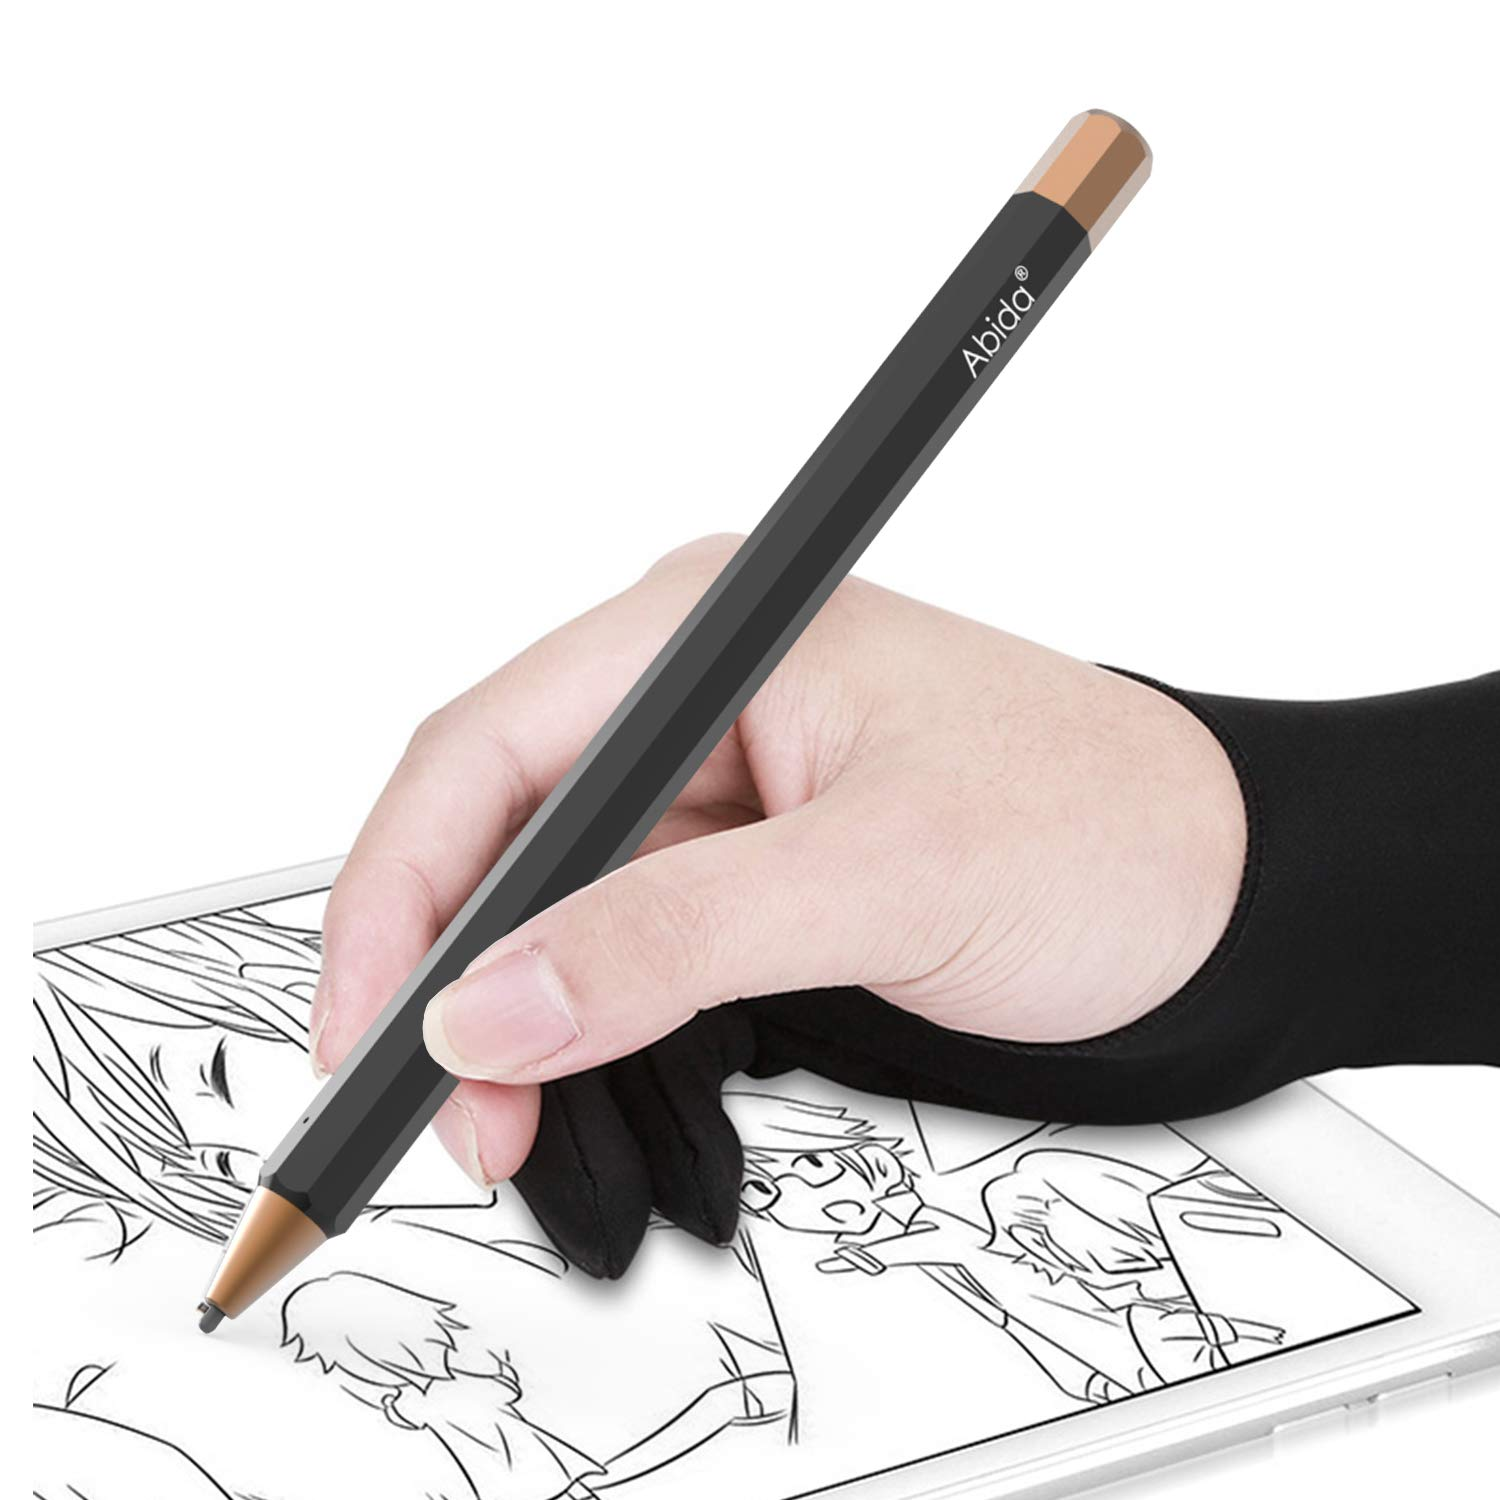 Us 4 99 1pcs drawing glove for graphic tablet art creation and ipad pro pencil black in art sets from office school supplies on aliexpress com